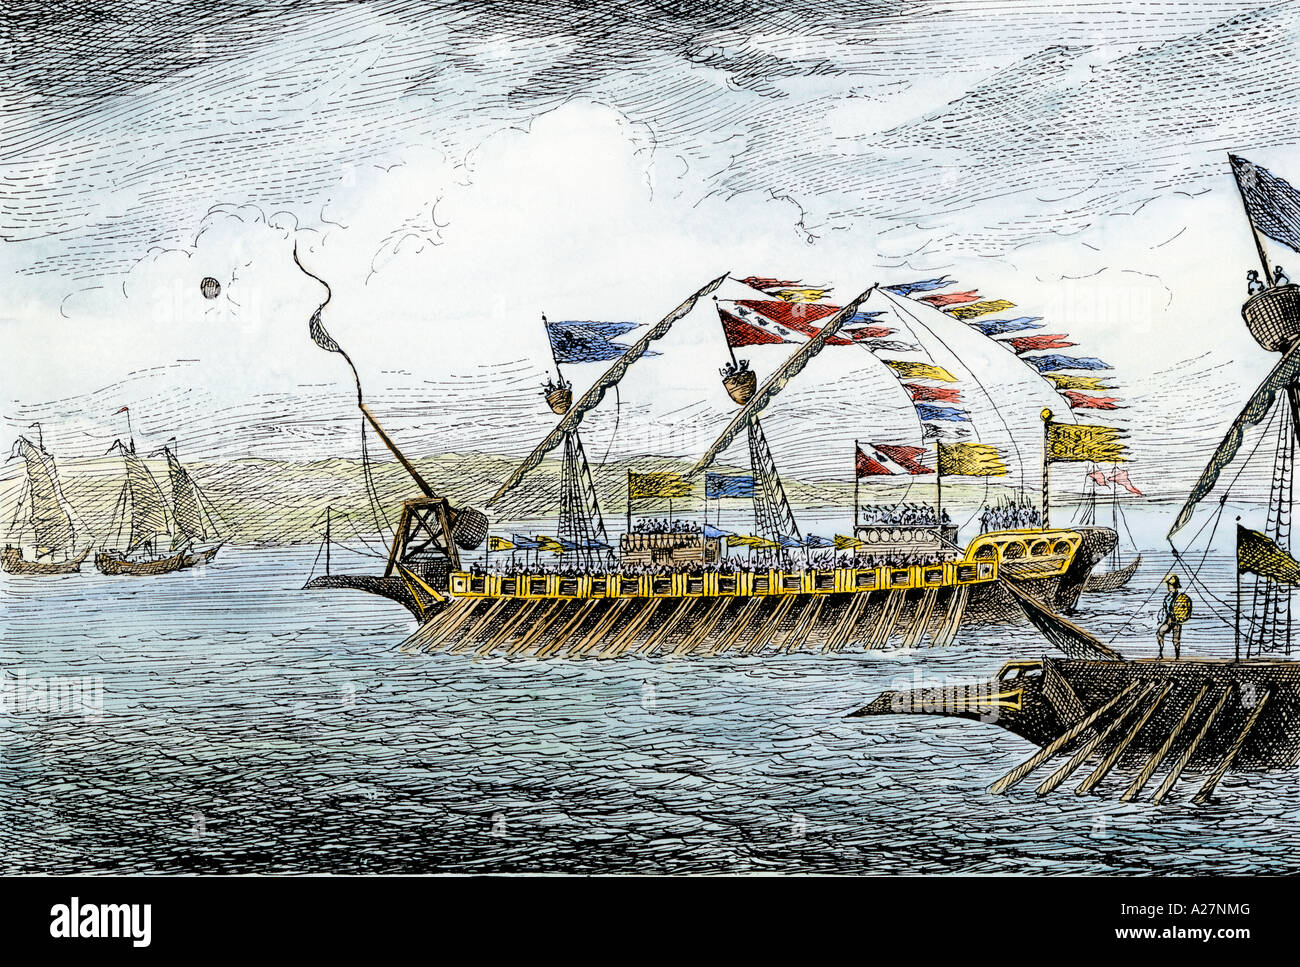 Marco Polo leading the Venetian ships at Korcula in the Adriatic Sea. Hand-colored woodcut - Stock Image